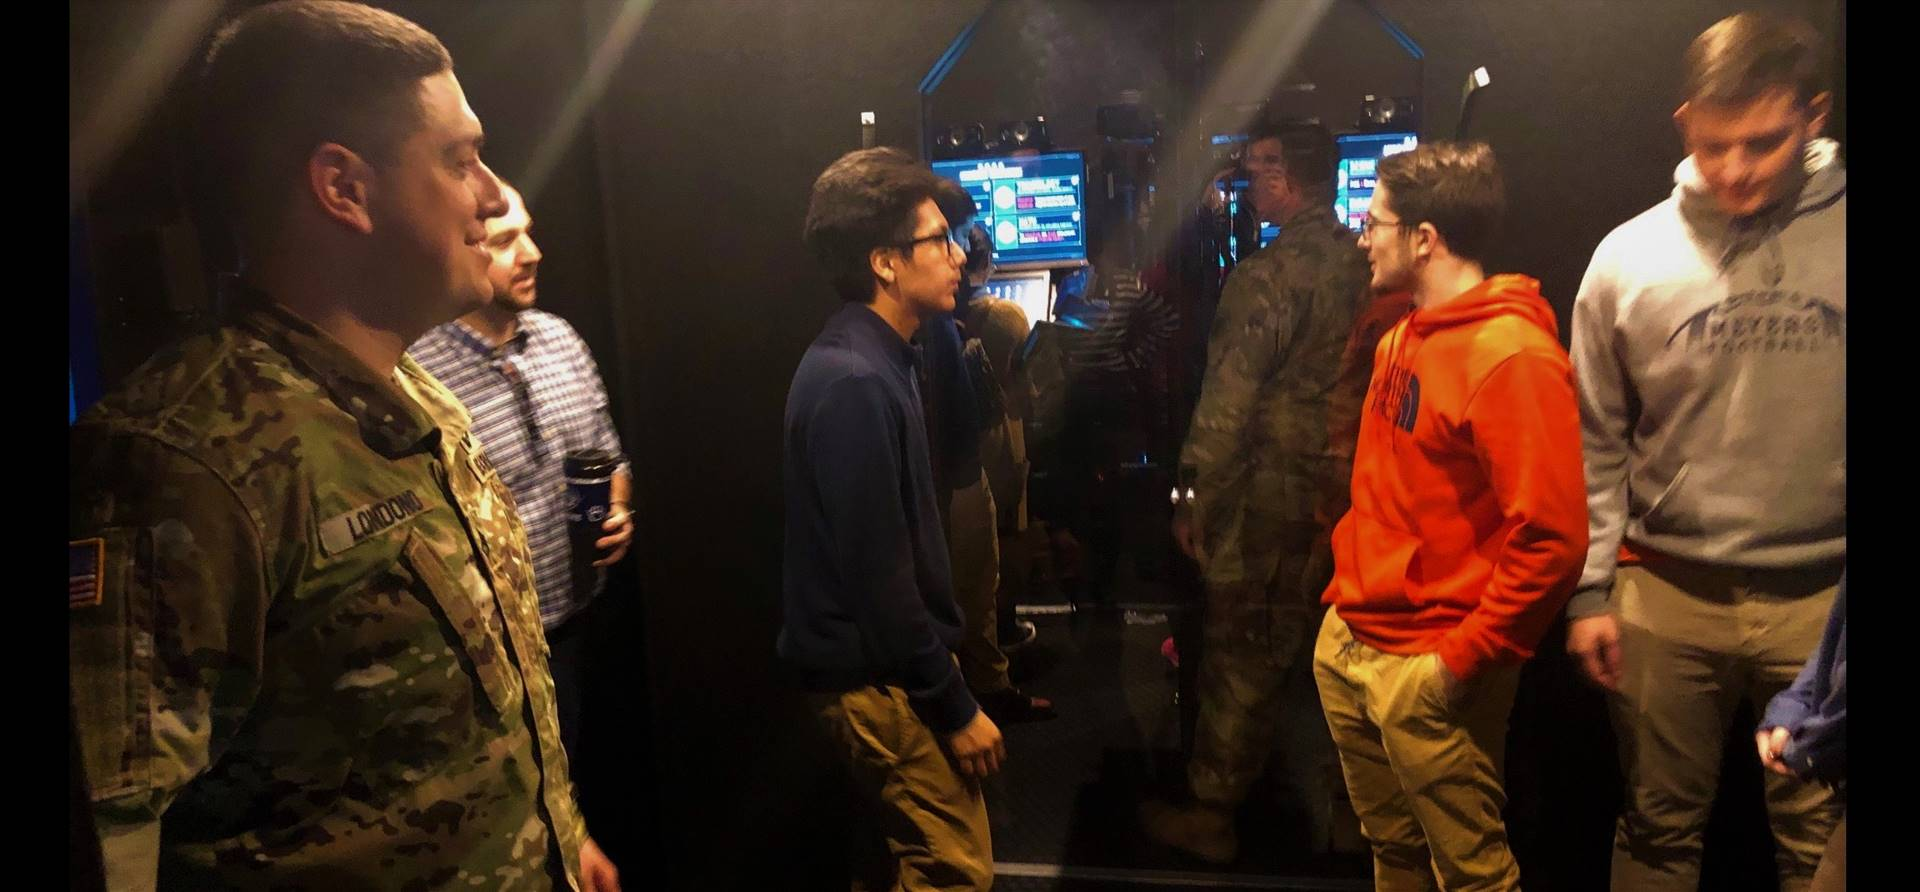 STEM Seniors tour the US Army STEM Semi to learn about technology and careers